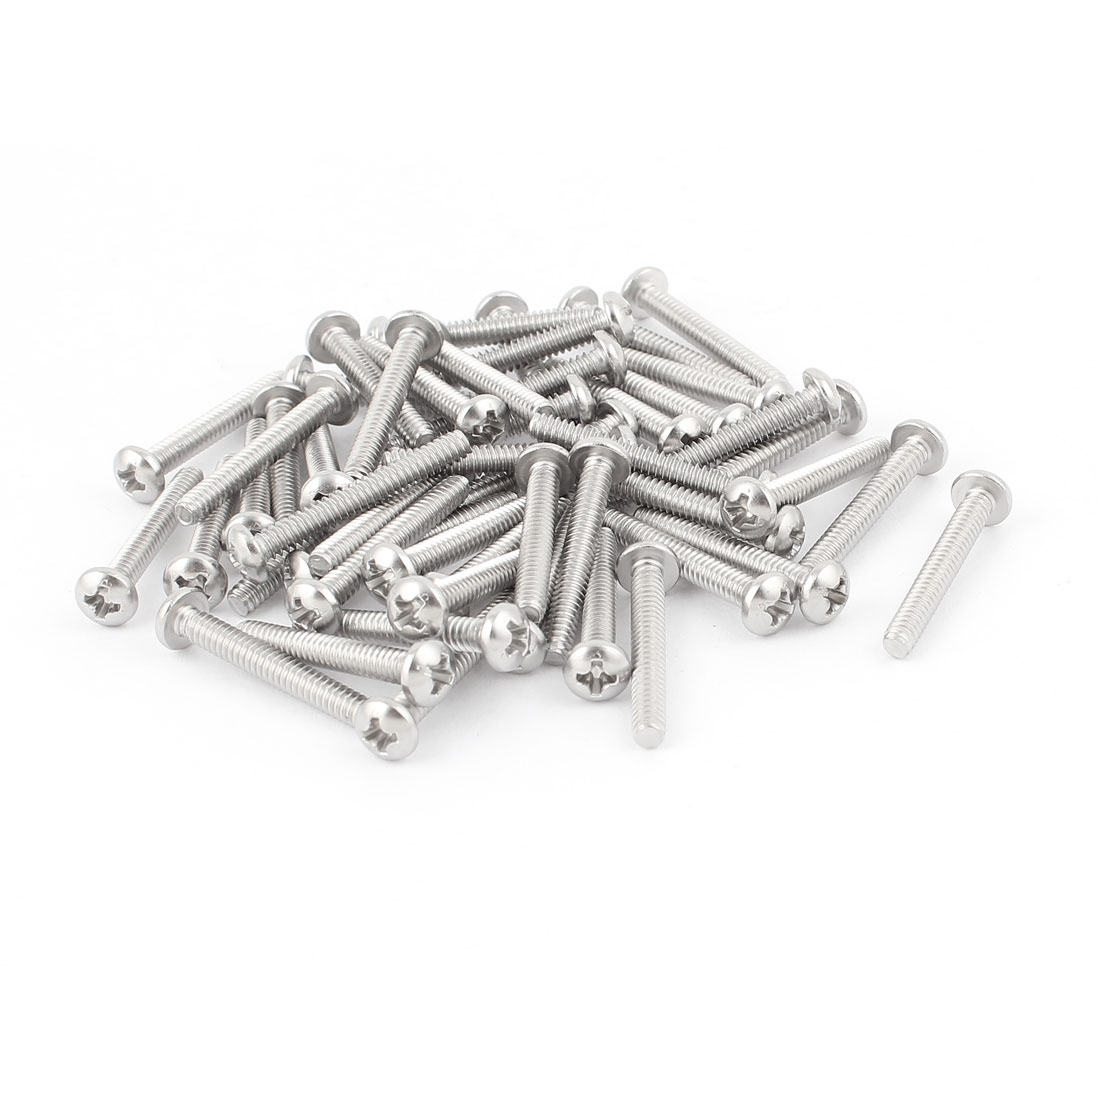 "50 Pcs #6-32 x 1"" Stainless Steel Phillips Truss Head Machine Screws 27mm Long"